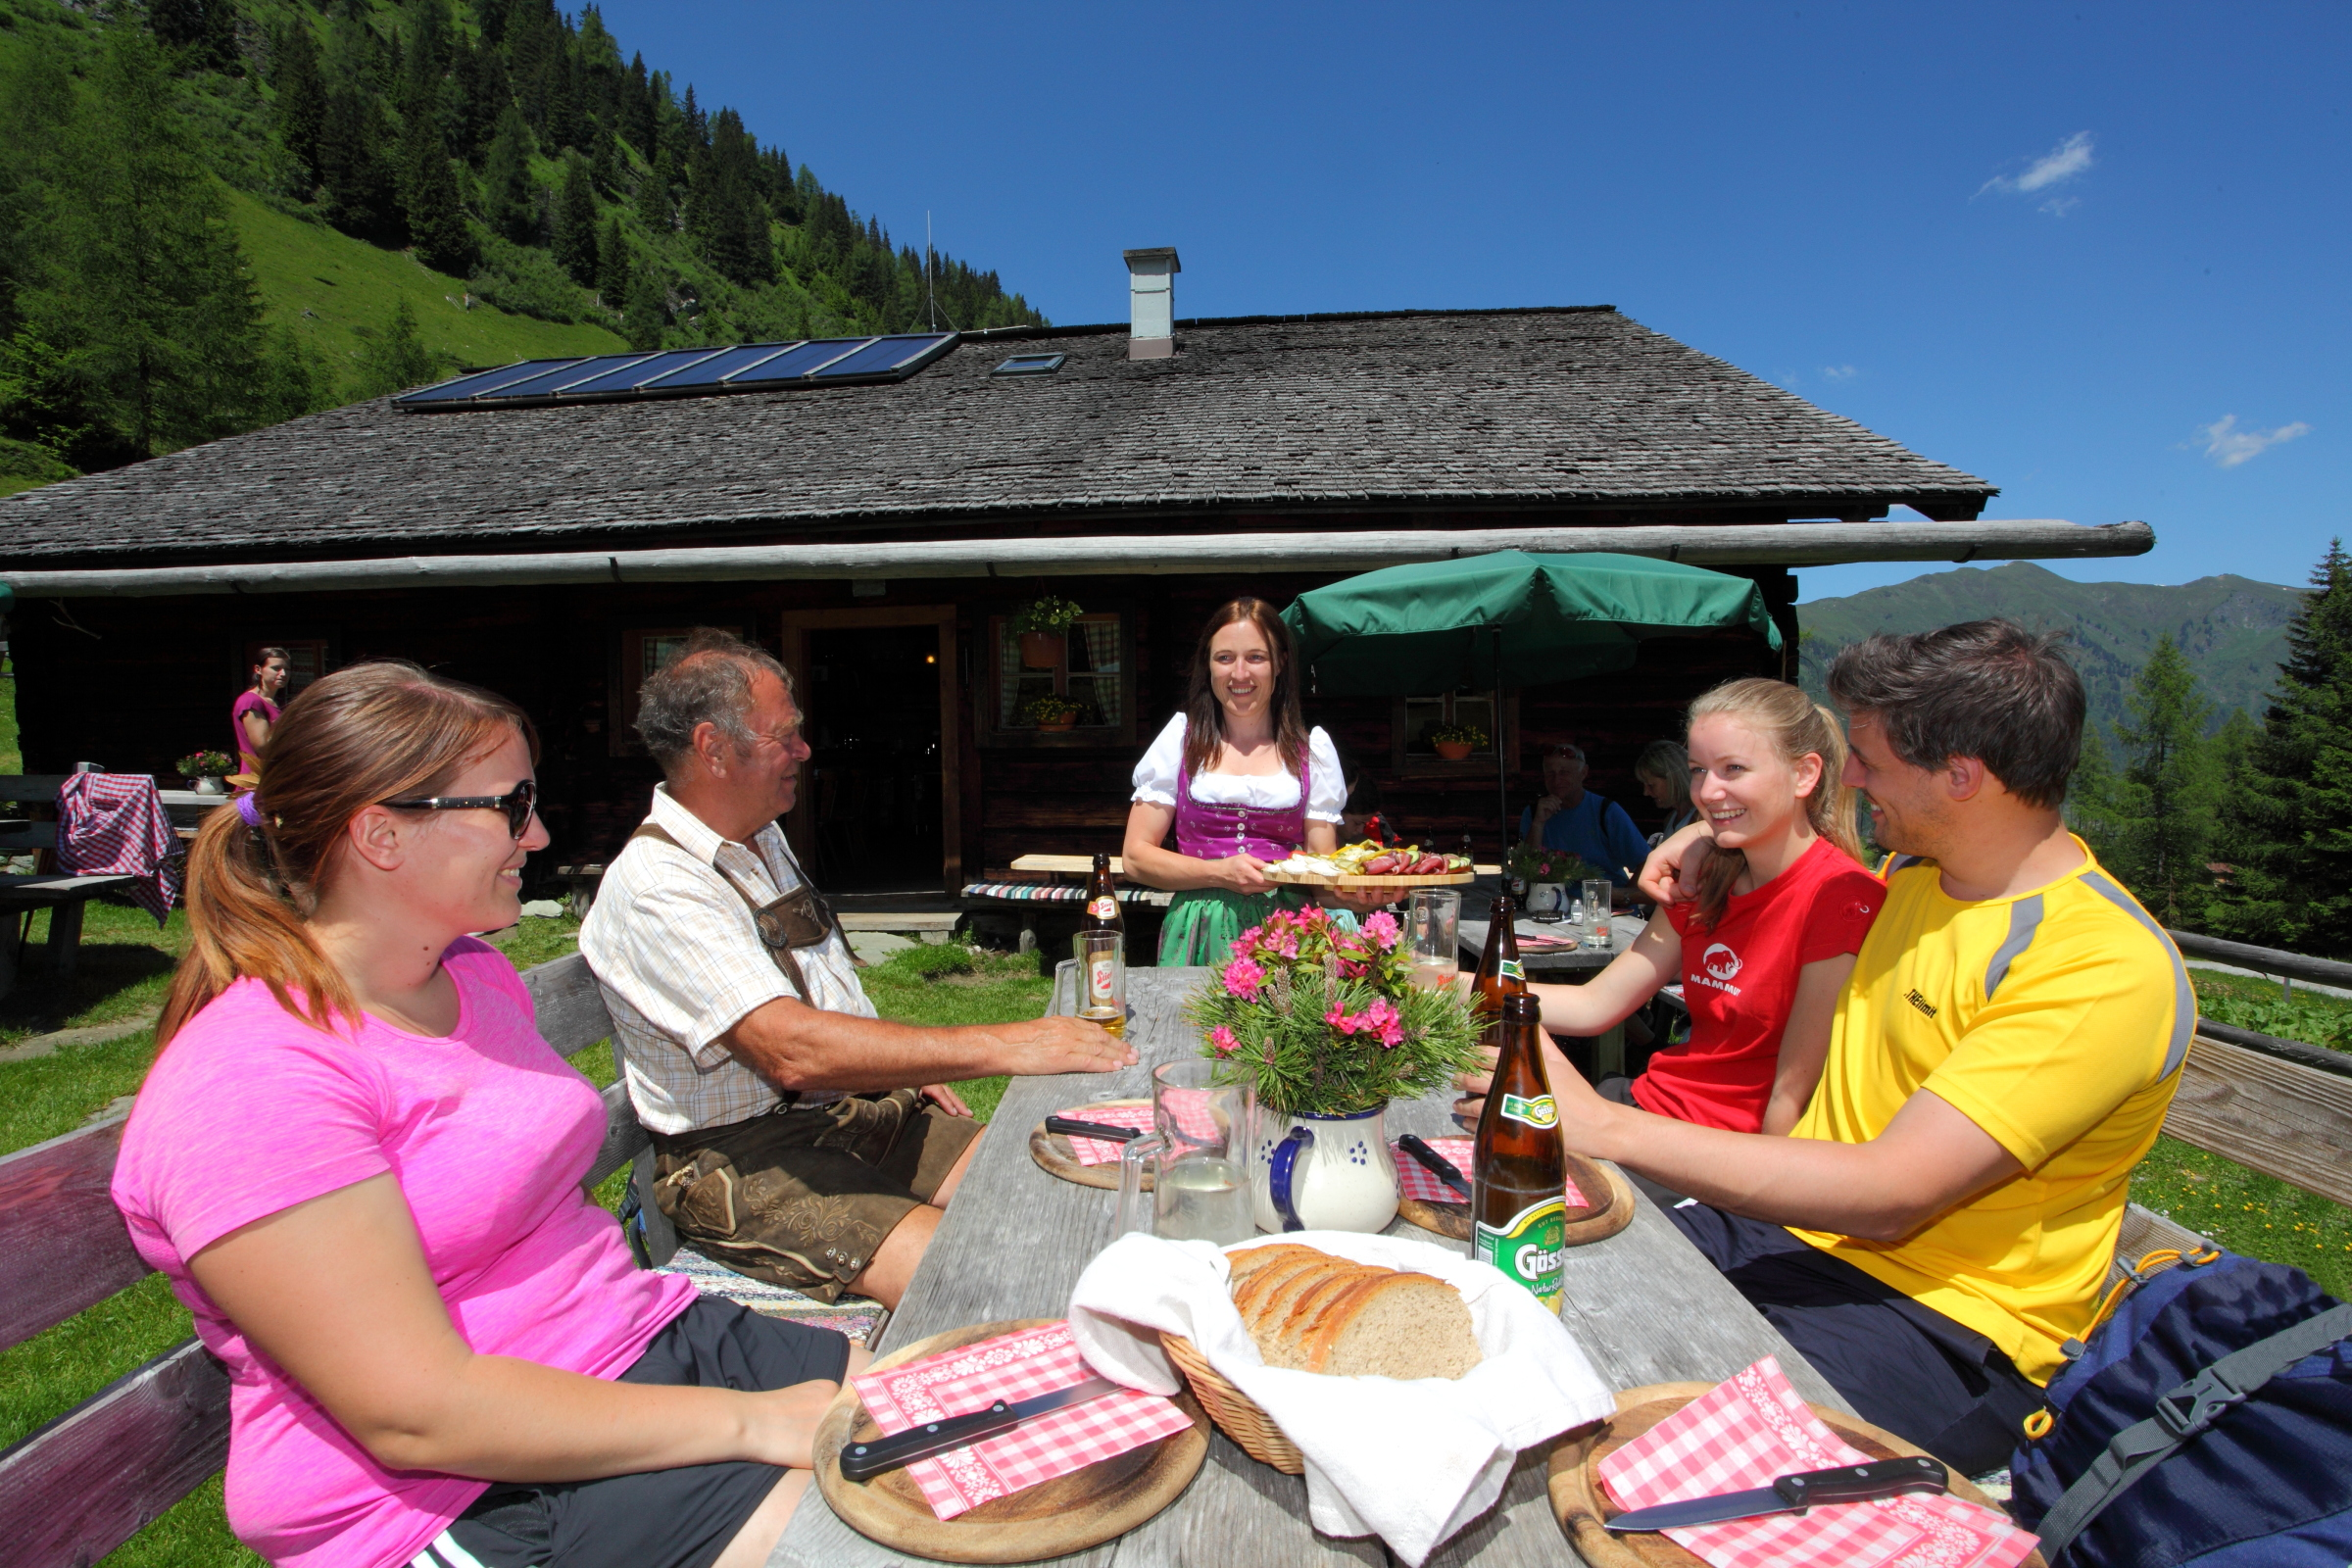 hikers lunching at an alpine hut copyright Grossarltal Tourism